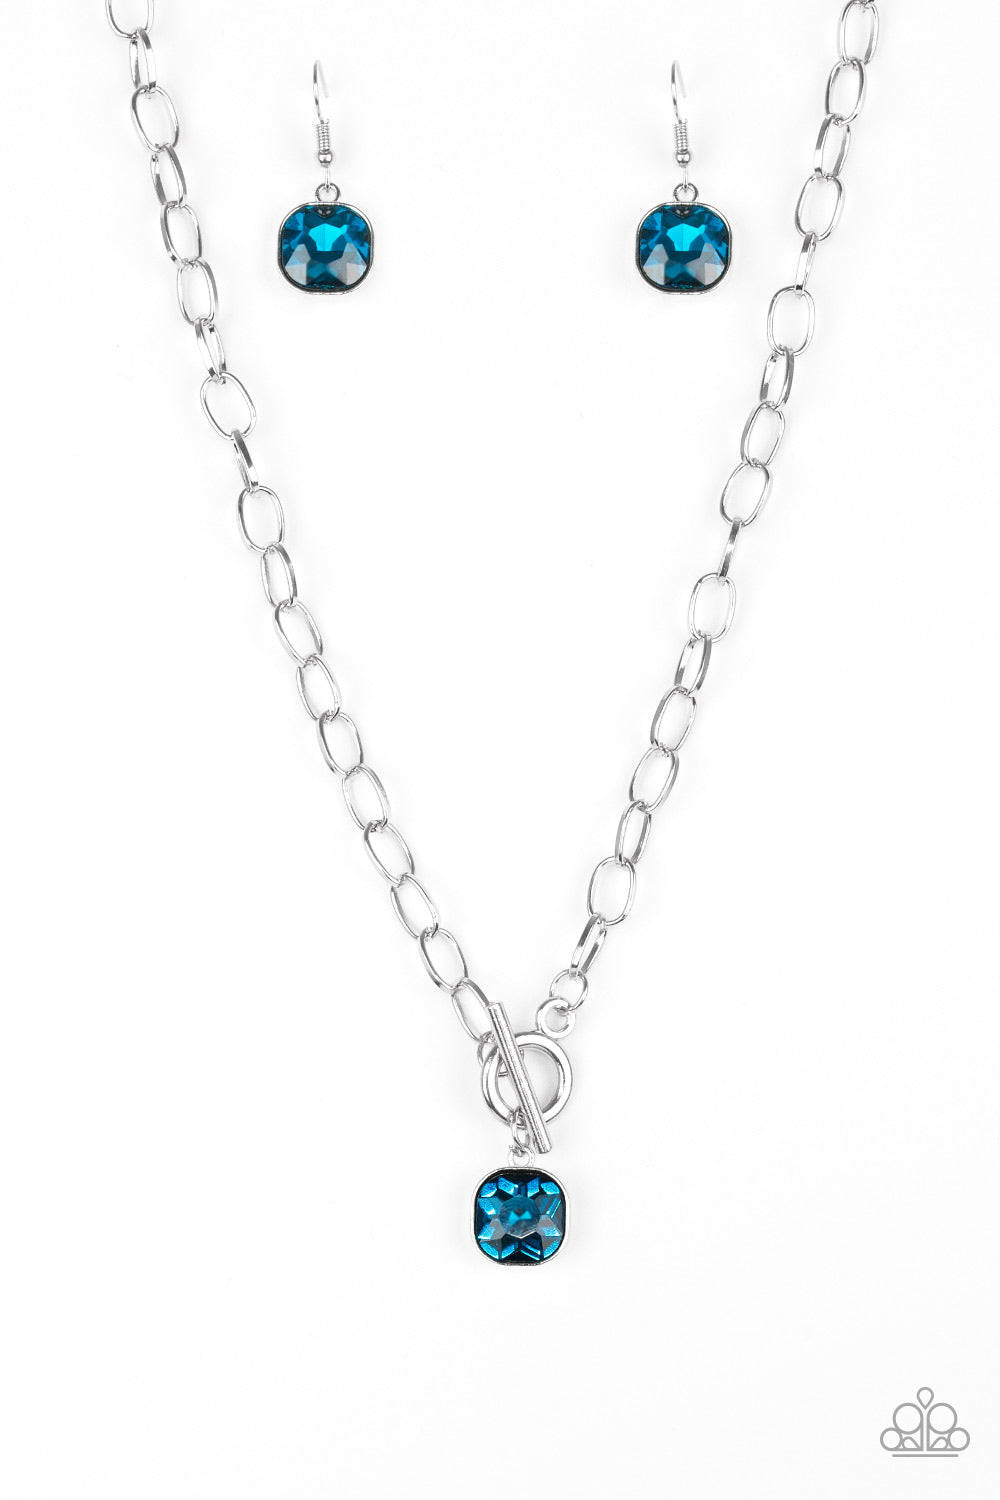 Paparazzi Accessories - Dynamite Dazzle - Blue Necklace - JMJ Jewelry Collection